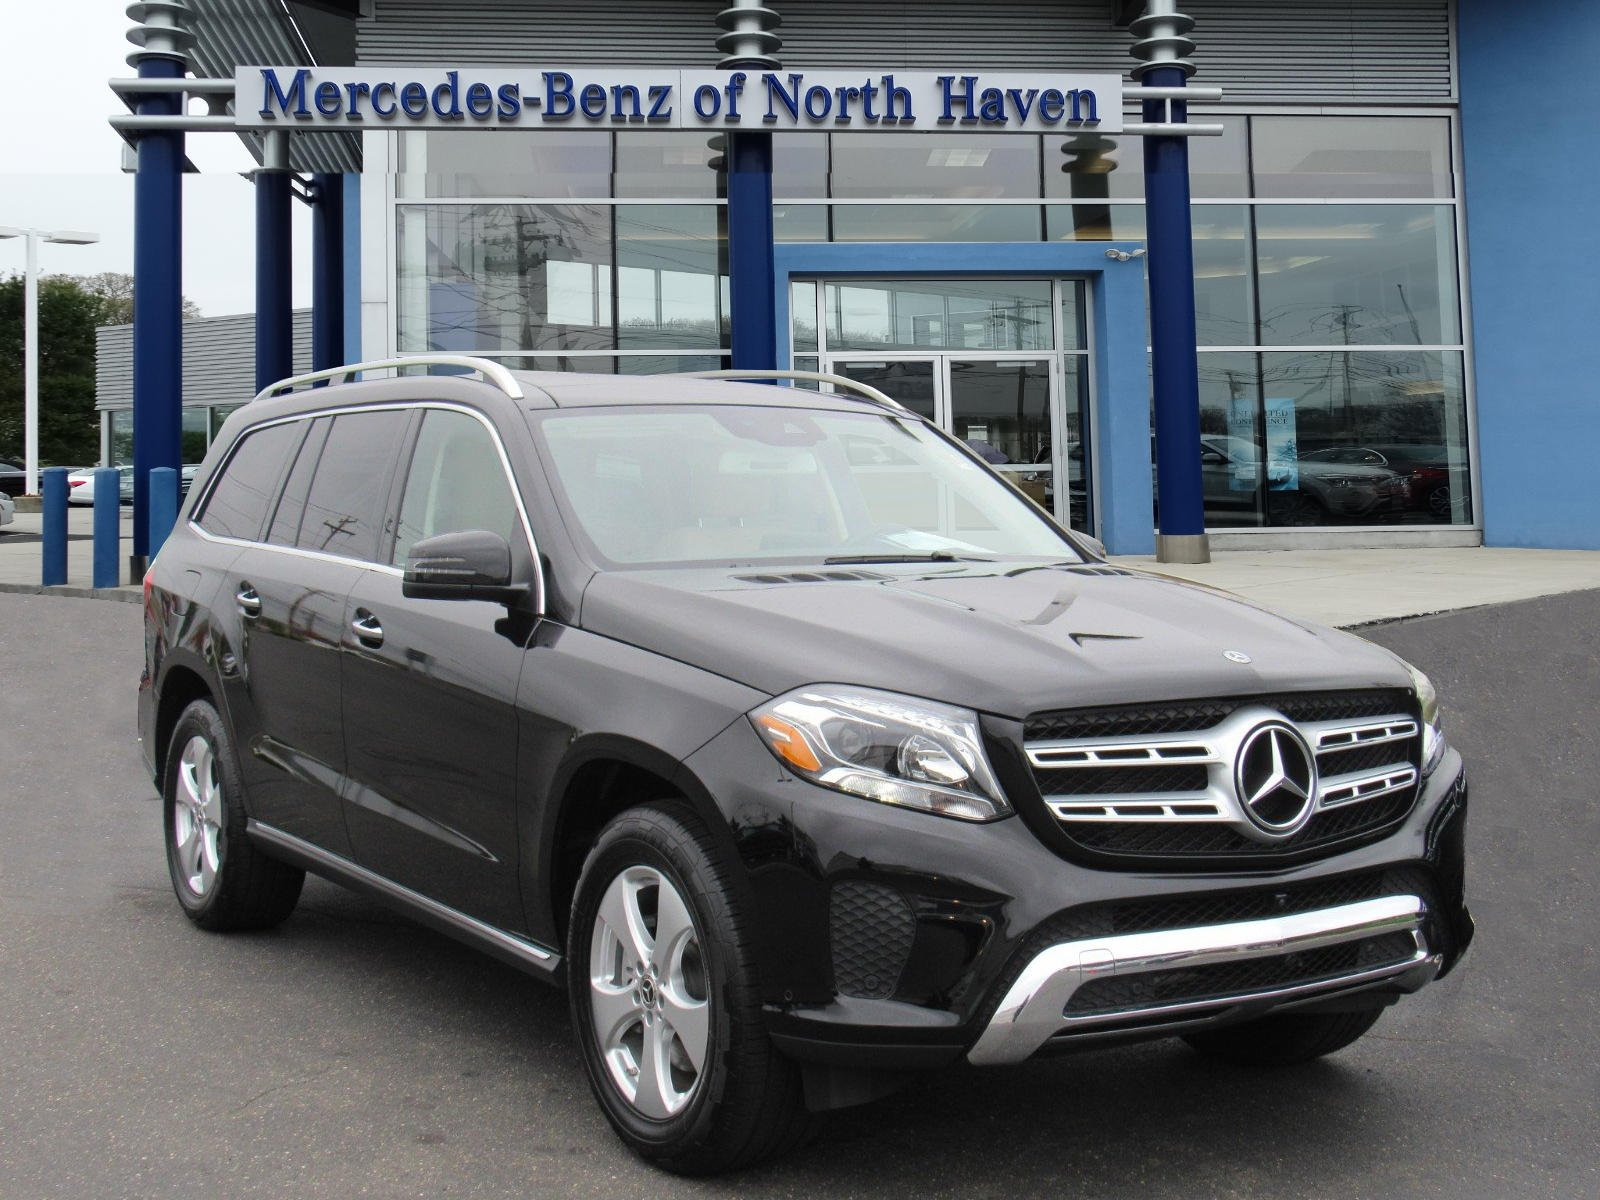 Pre Owned 2018 Mercedes Benz GLS GLS 450 SUV in North Haven M